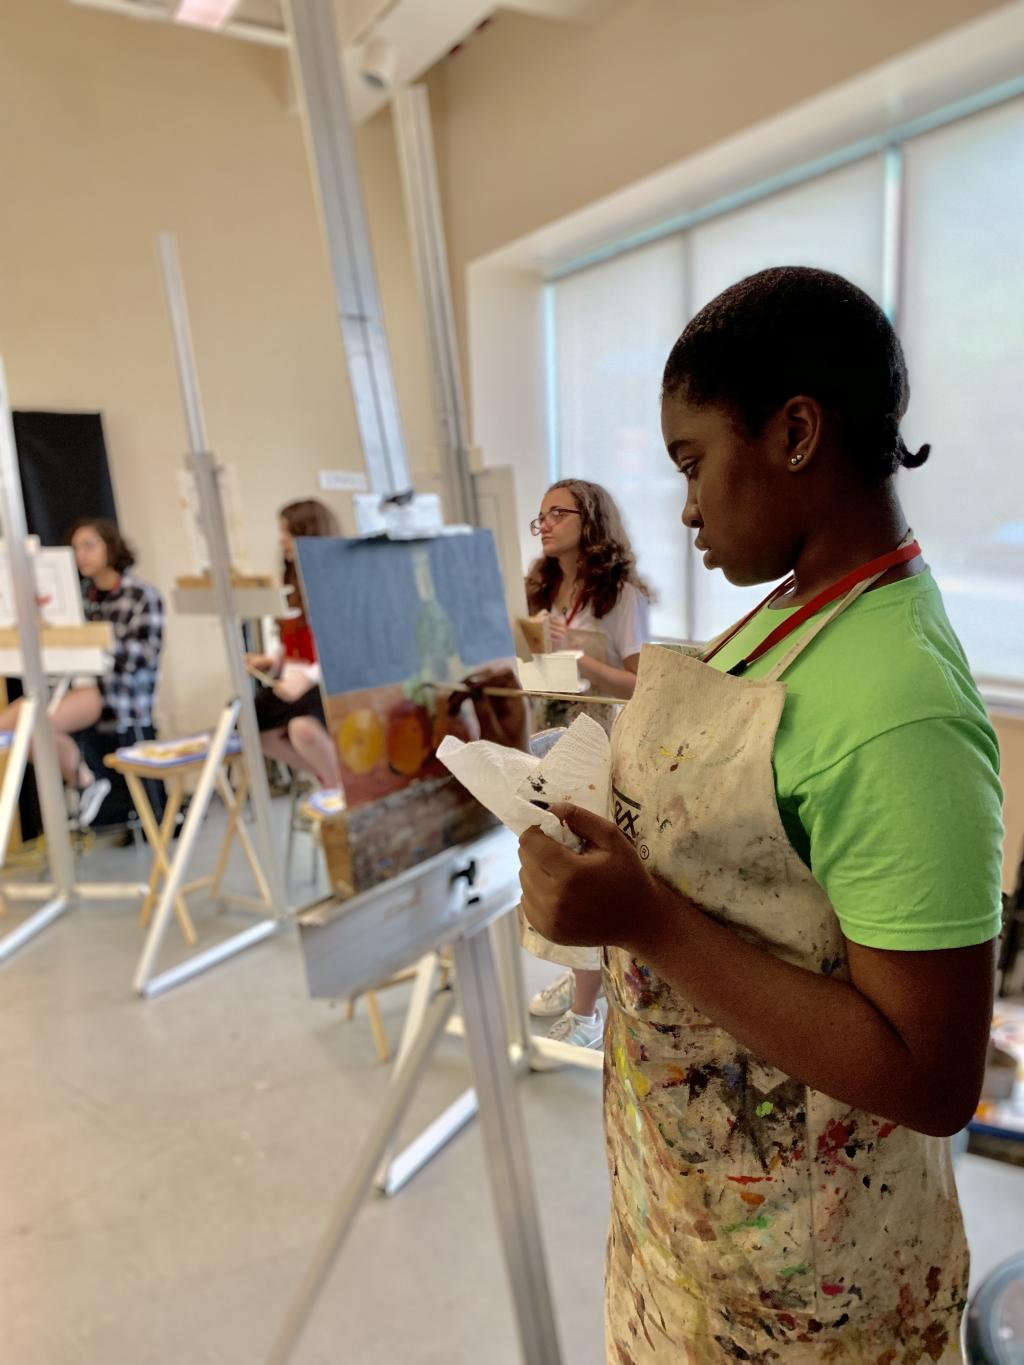 a teen student is painting on an easel. She is not facing the camera.